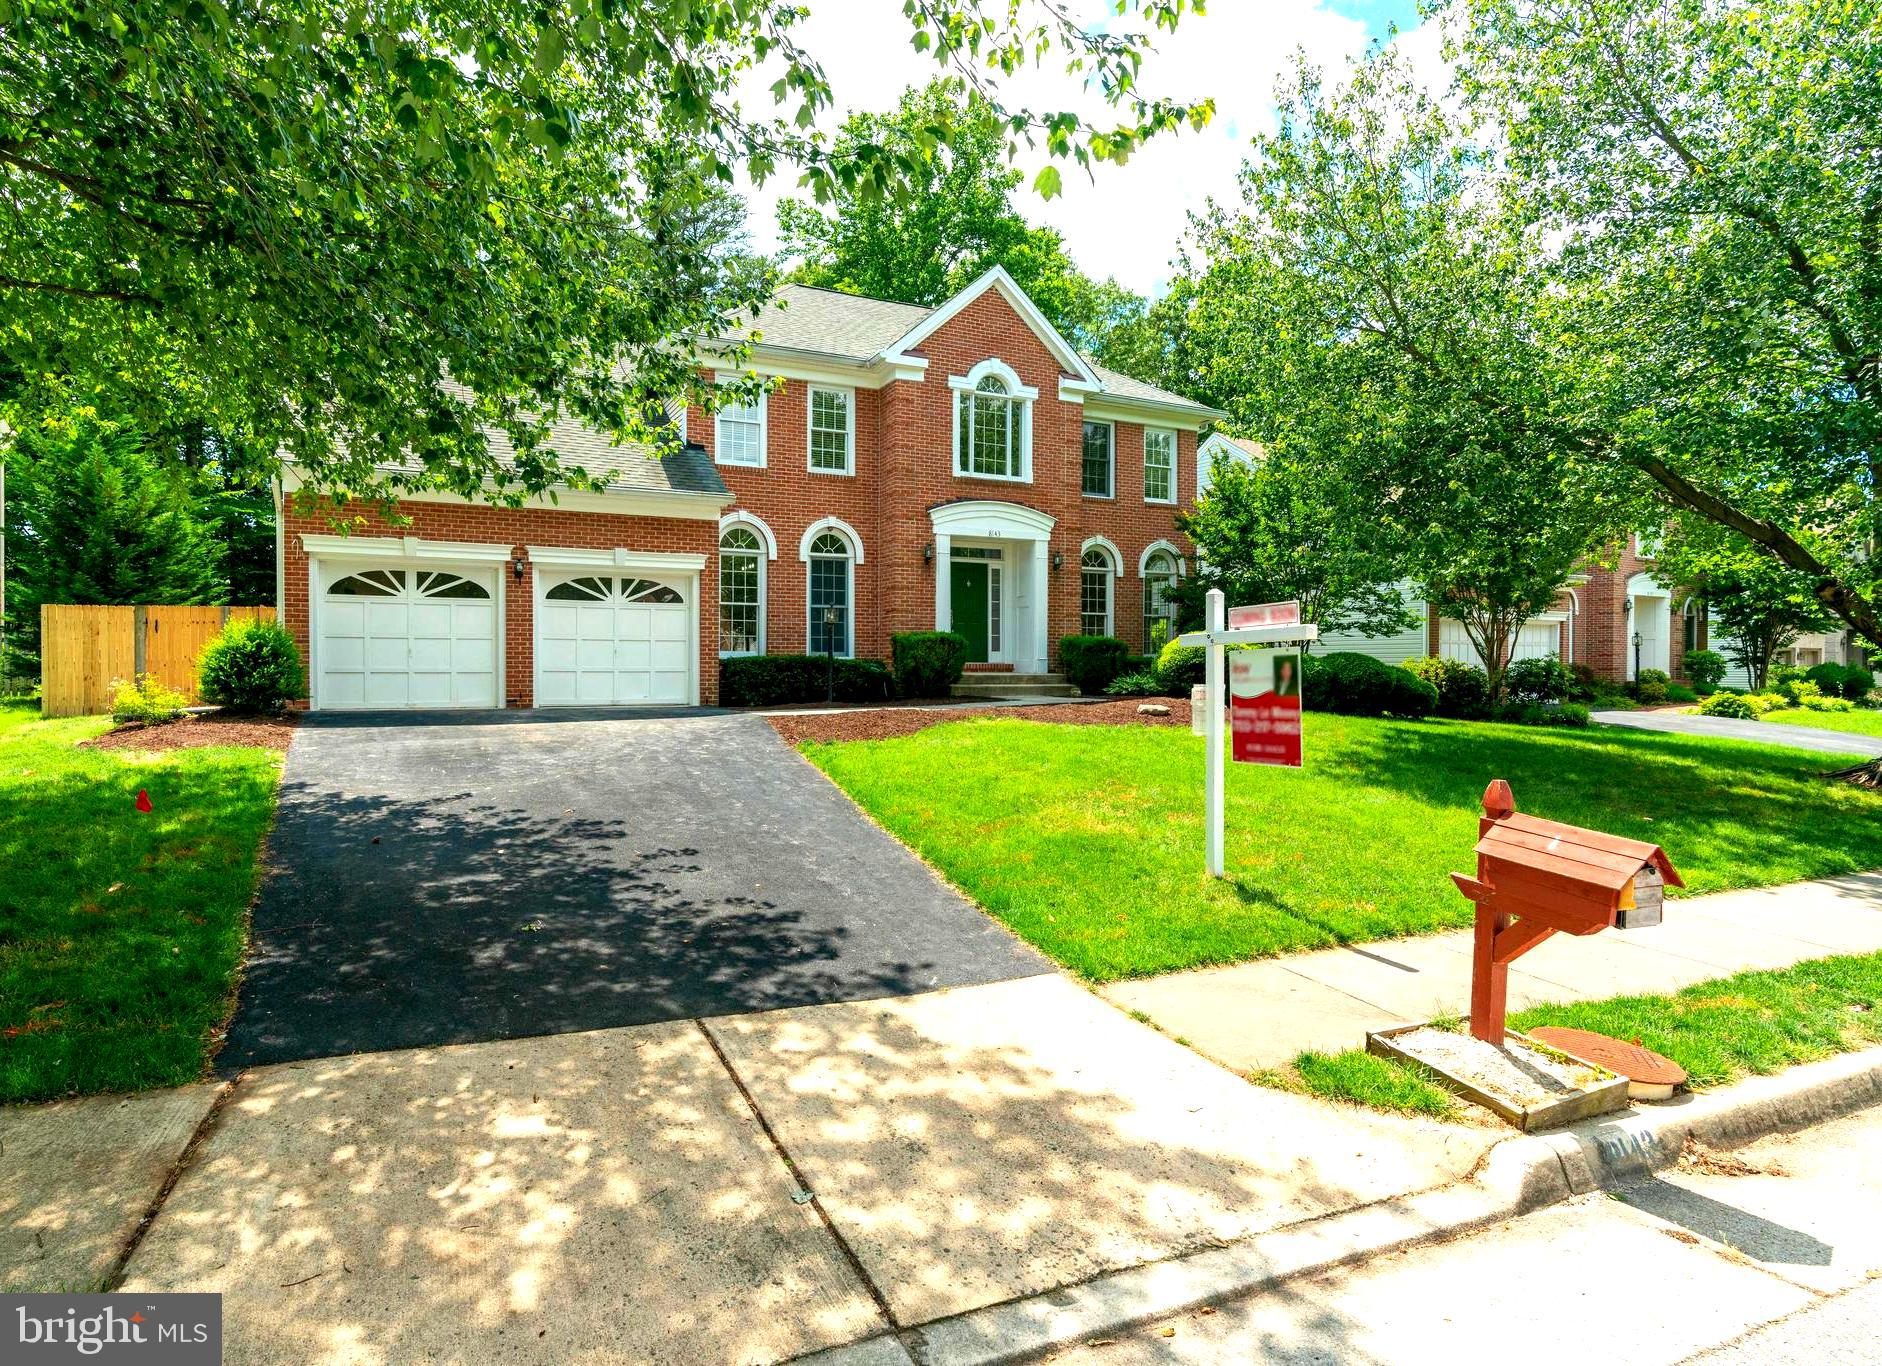 8143 RIDGE CREEK WAY, SPRINGFIELD, VA 22153